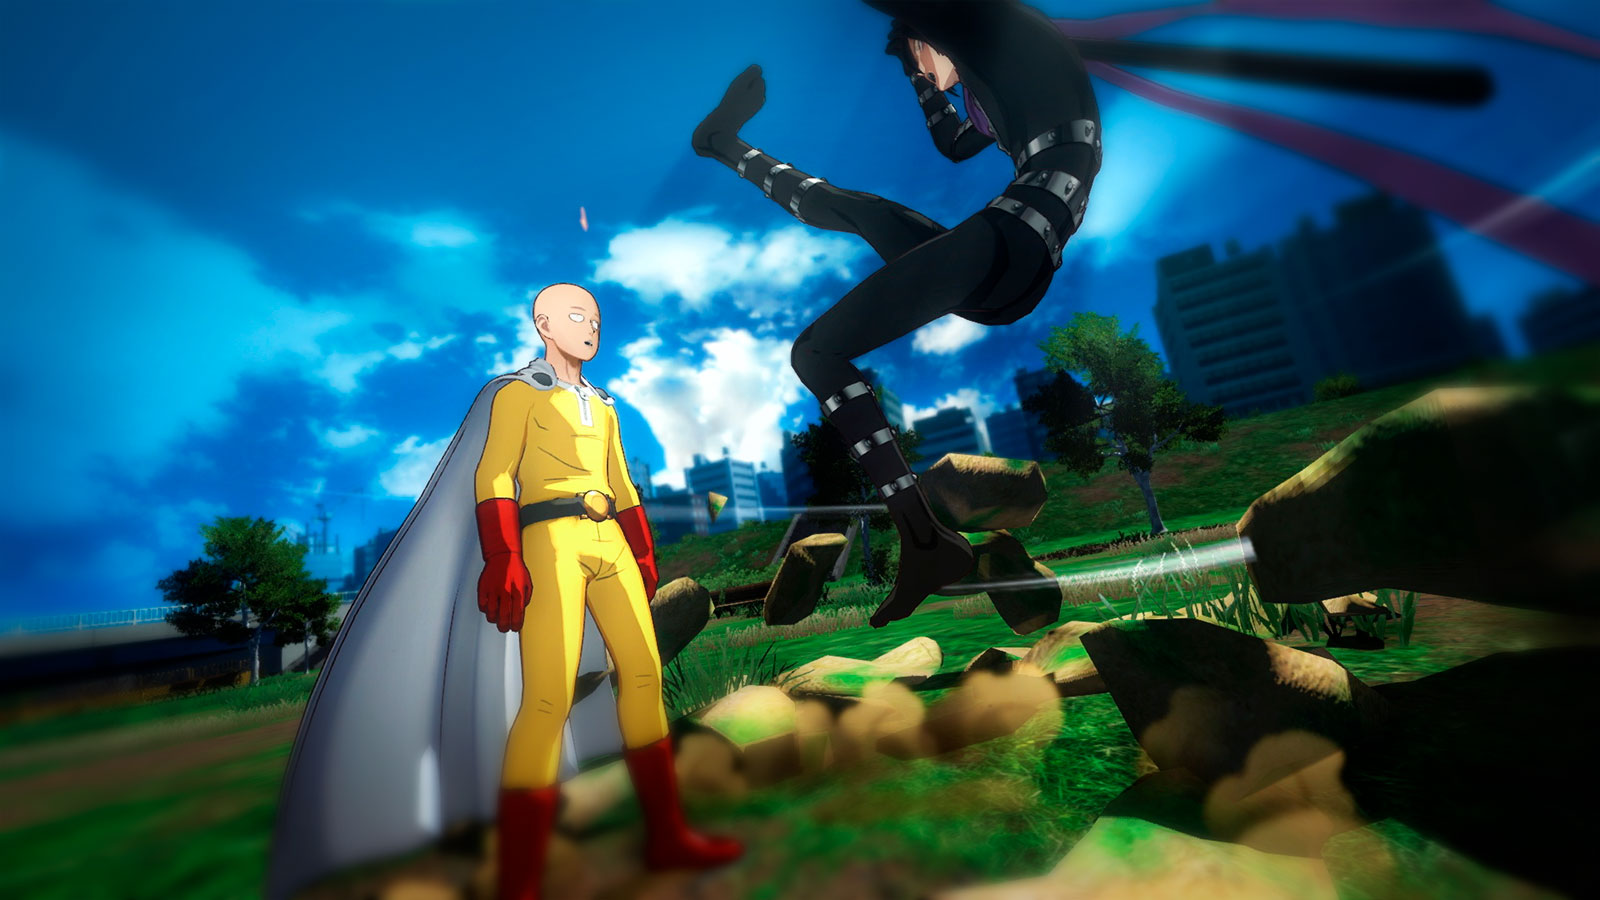 ONE PUNCH MAN аниме файт